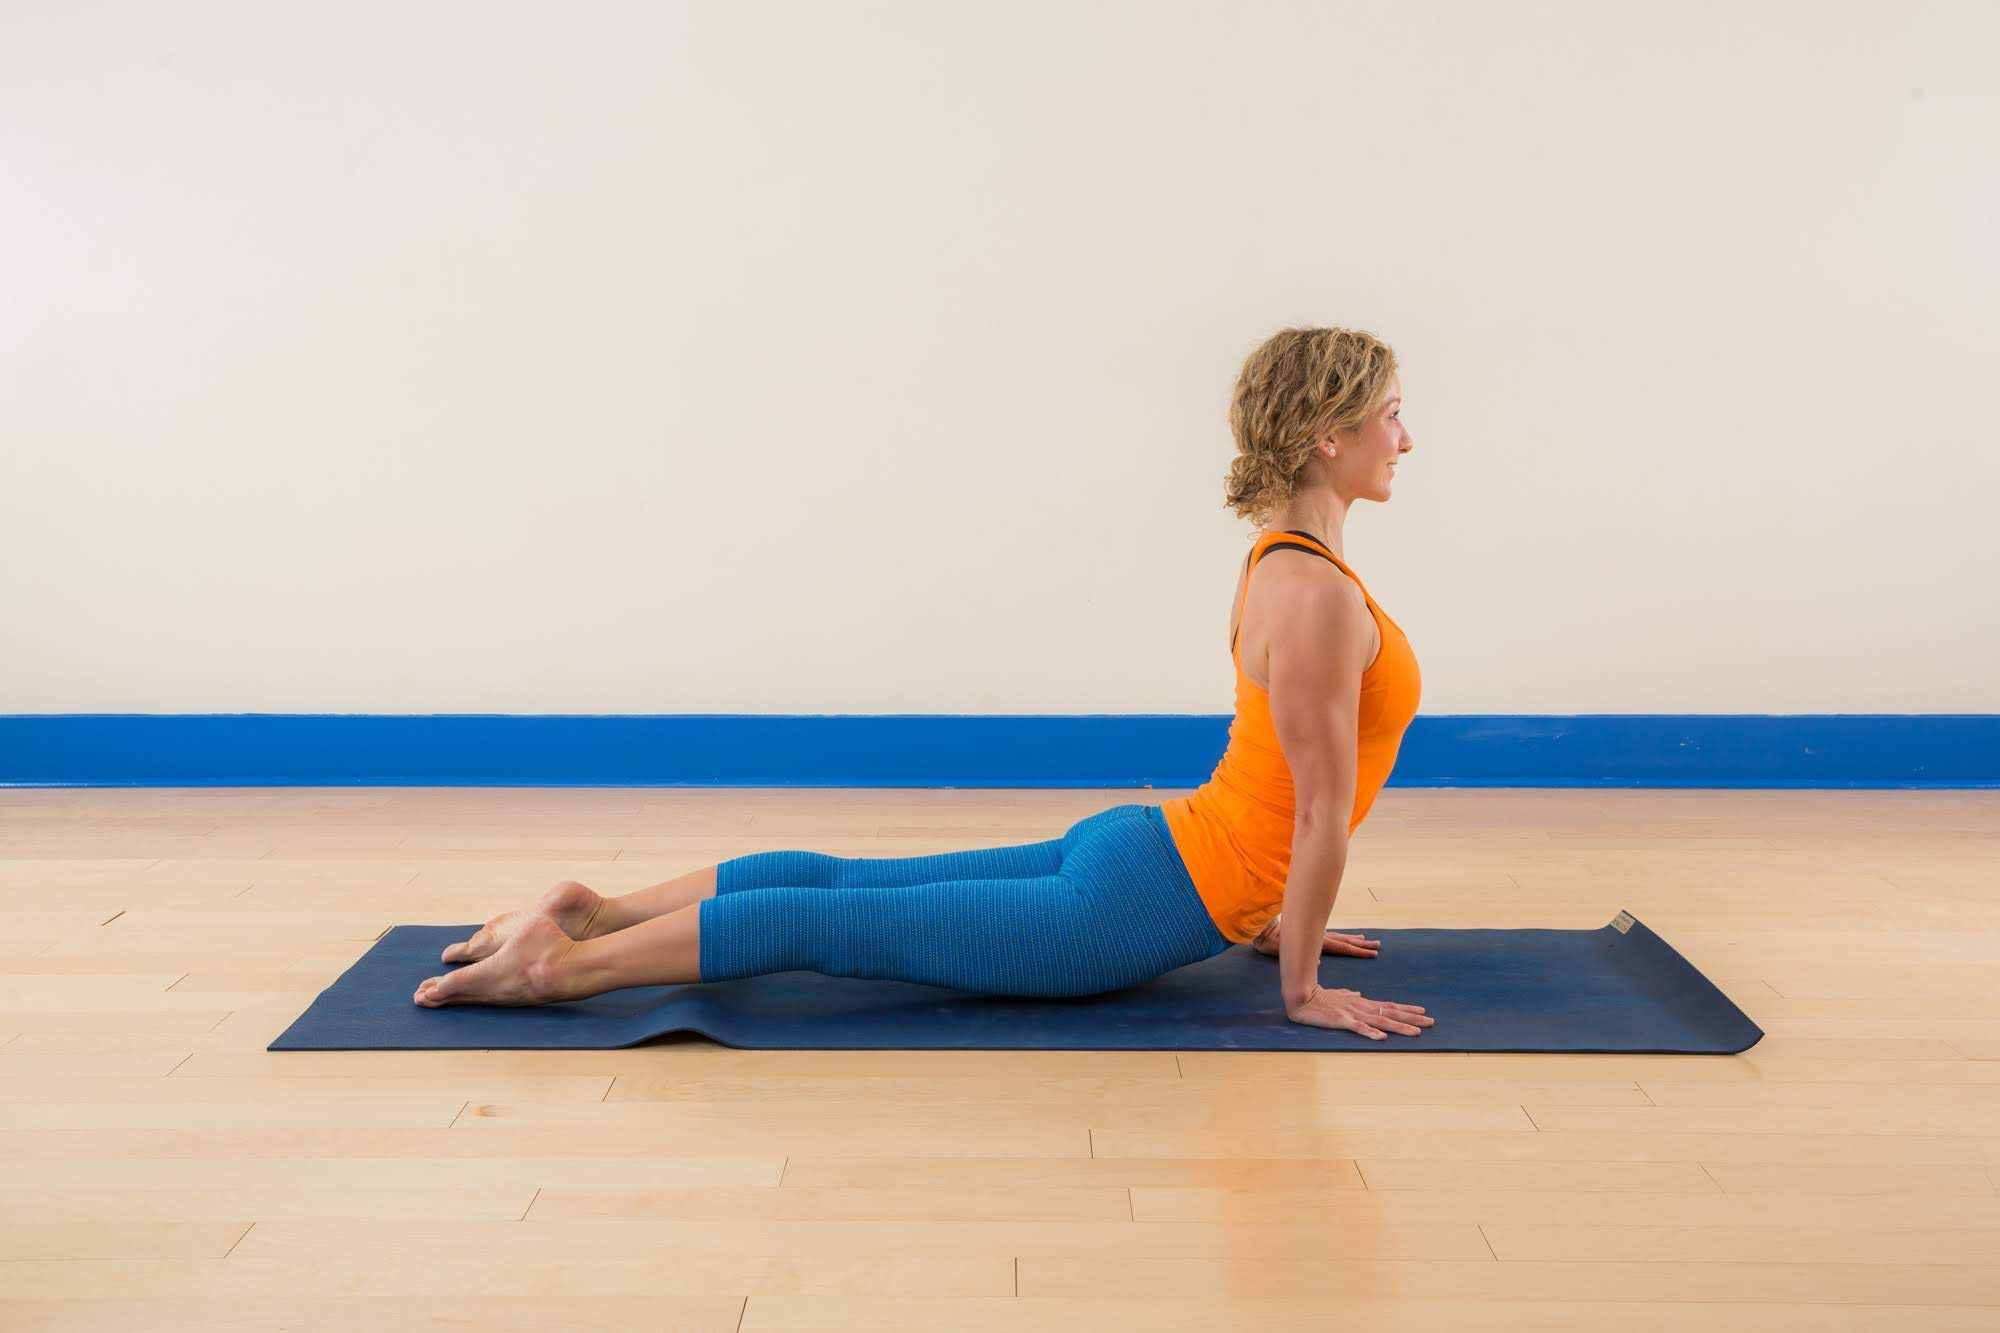 New Student Offer: 30 days of unlimited mat classes for $54 + HST